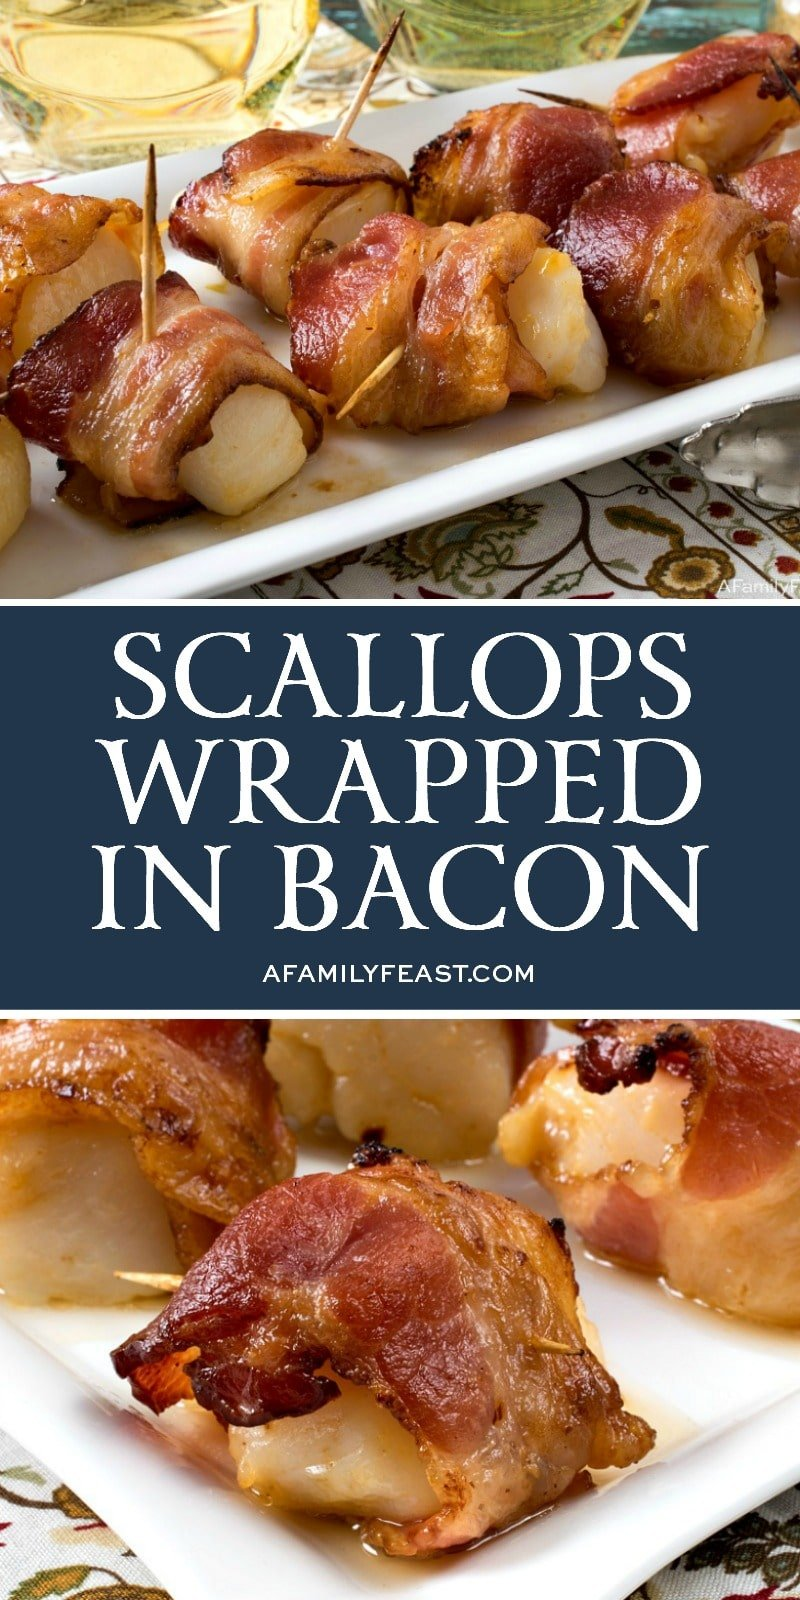 Scallops Wrapped in Bacon - A Family Feast